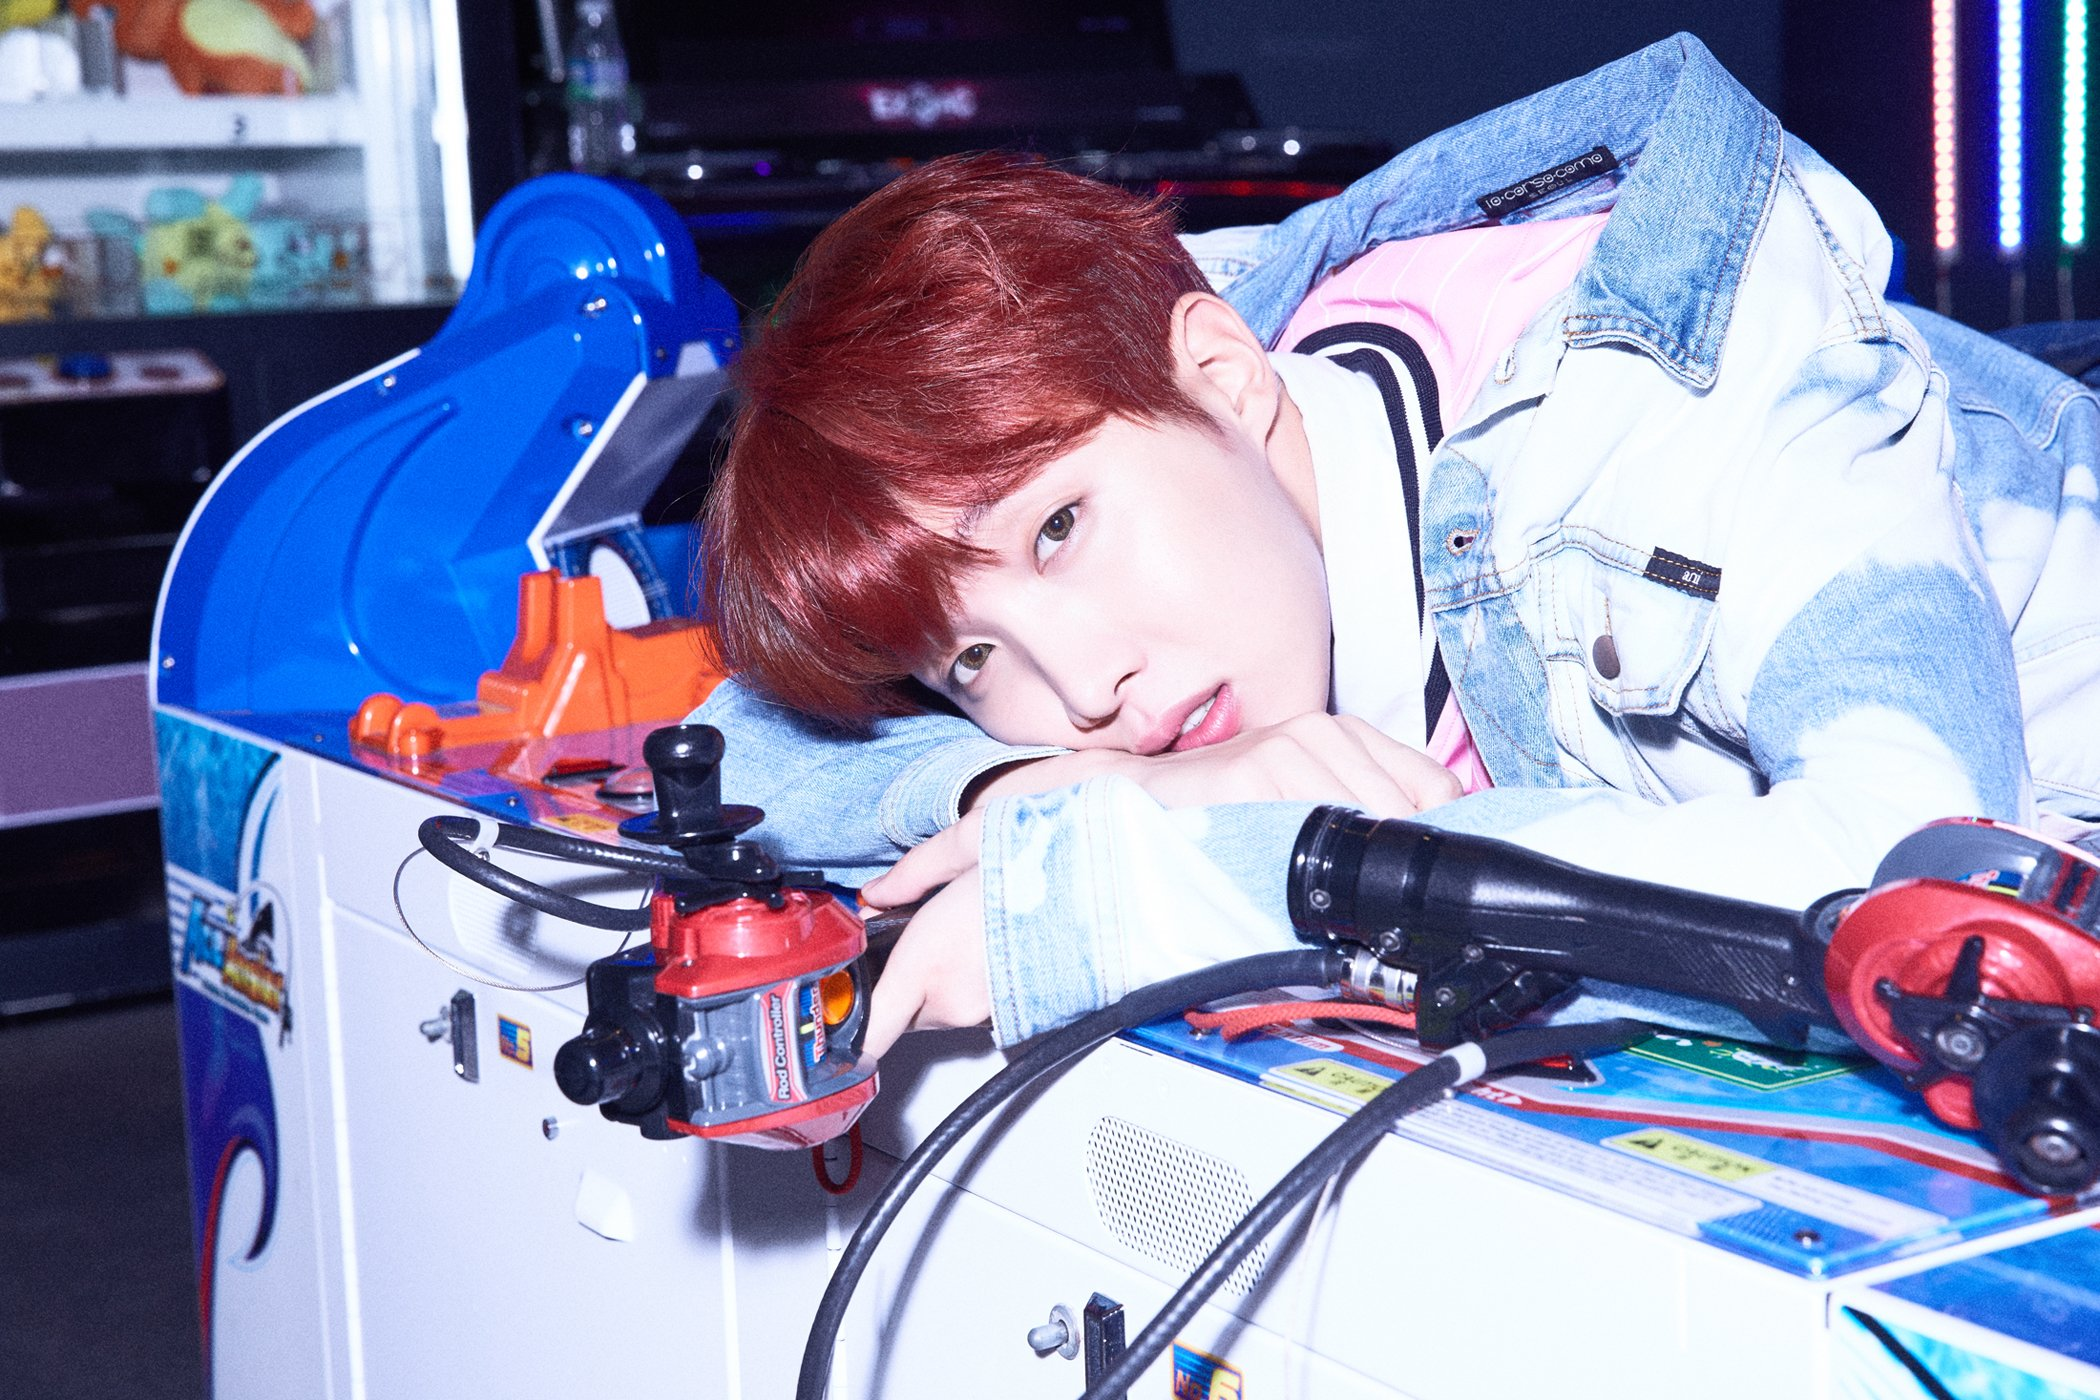 Picture] BTS – LOVE YOURSELF 承 Her Concept Photo E version